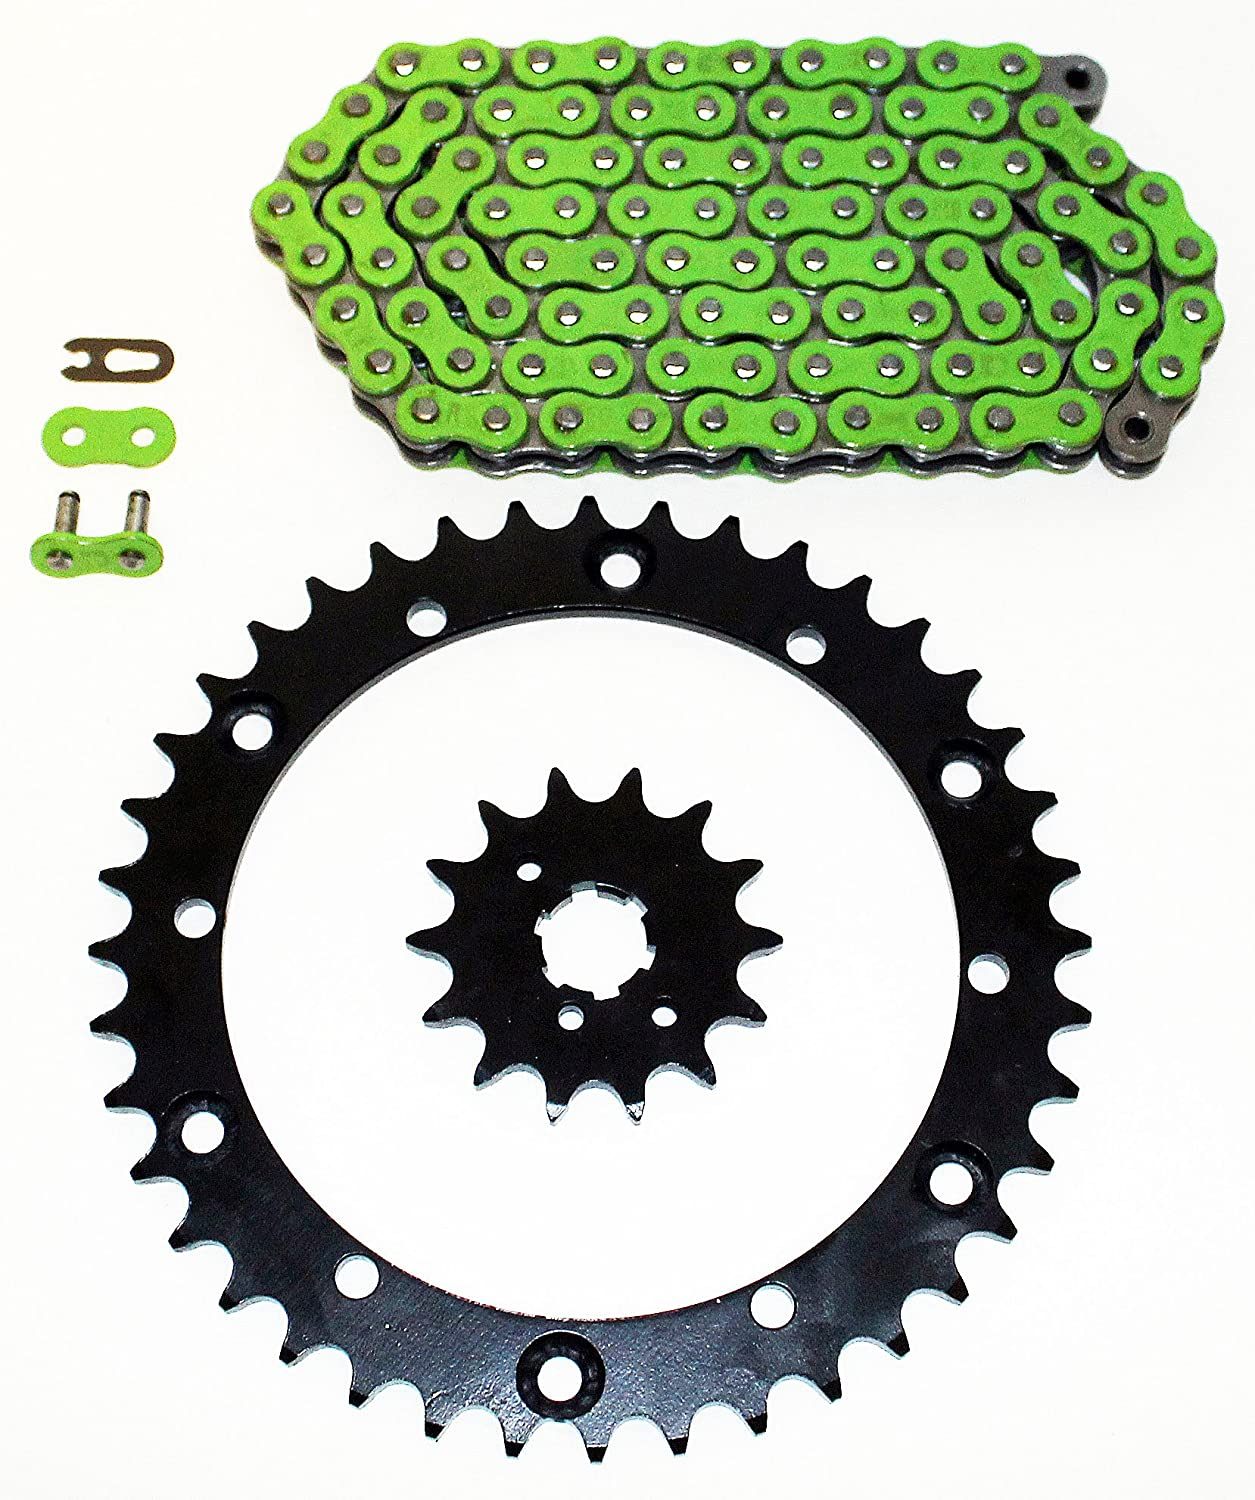 89-93 List price fits Yamaha YFM350 Direct store 350 Warrior Blac Chain Green O-Ring Non